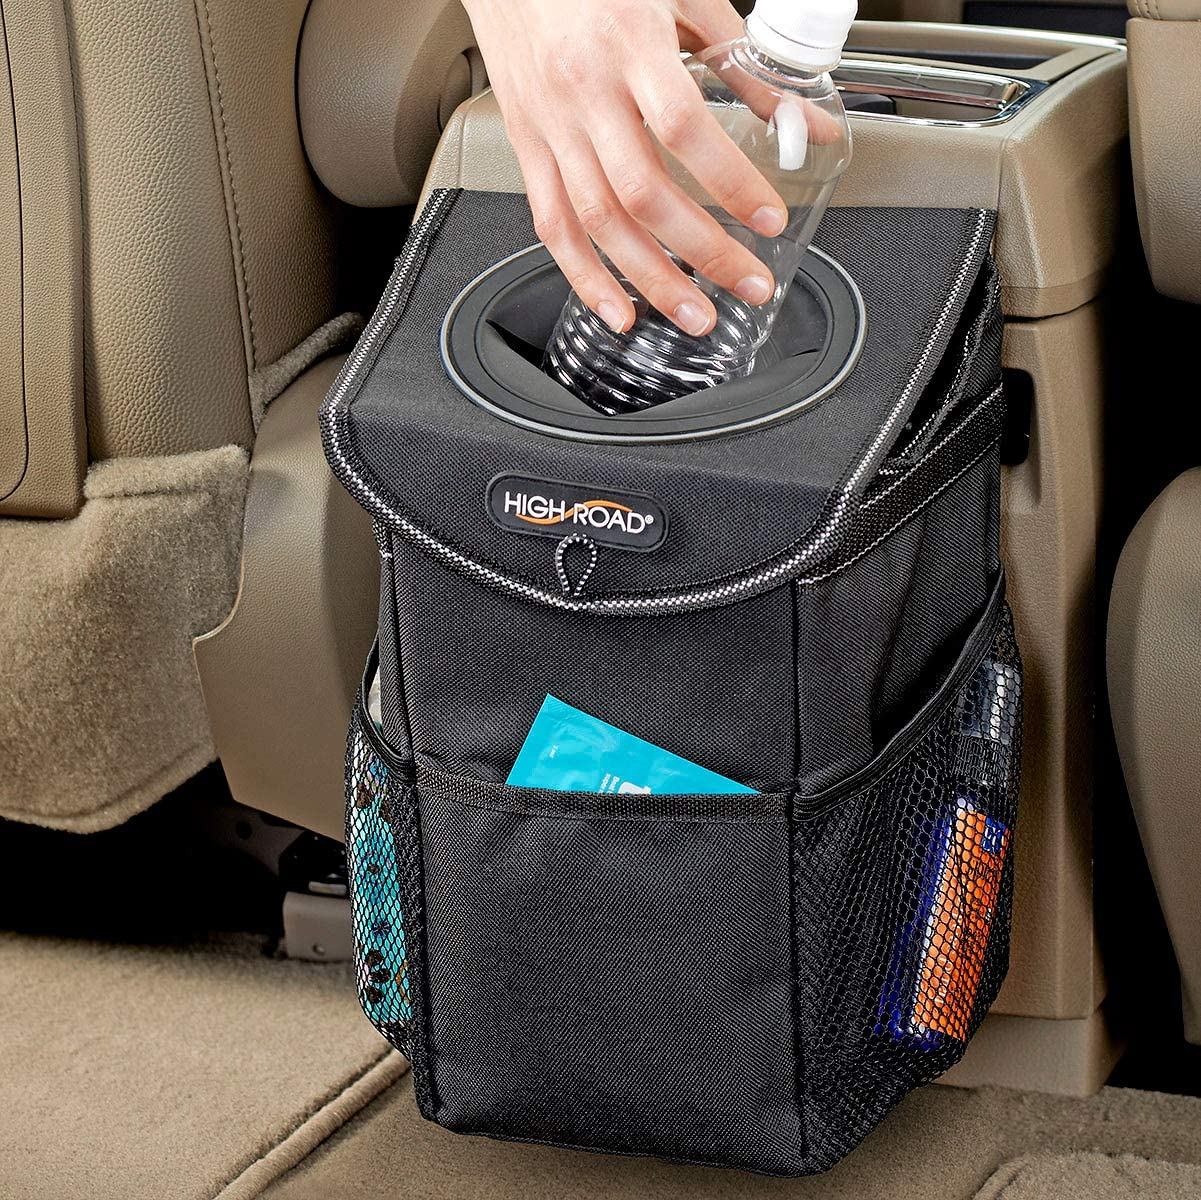 Top 10 Best Car Trash Cans in 2020 Reviews